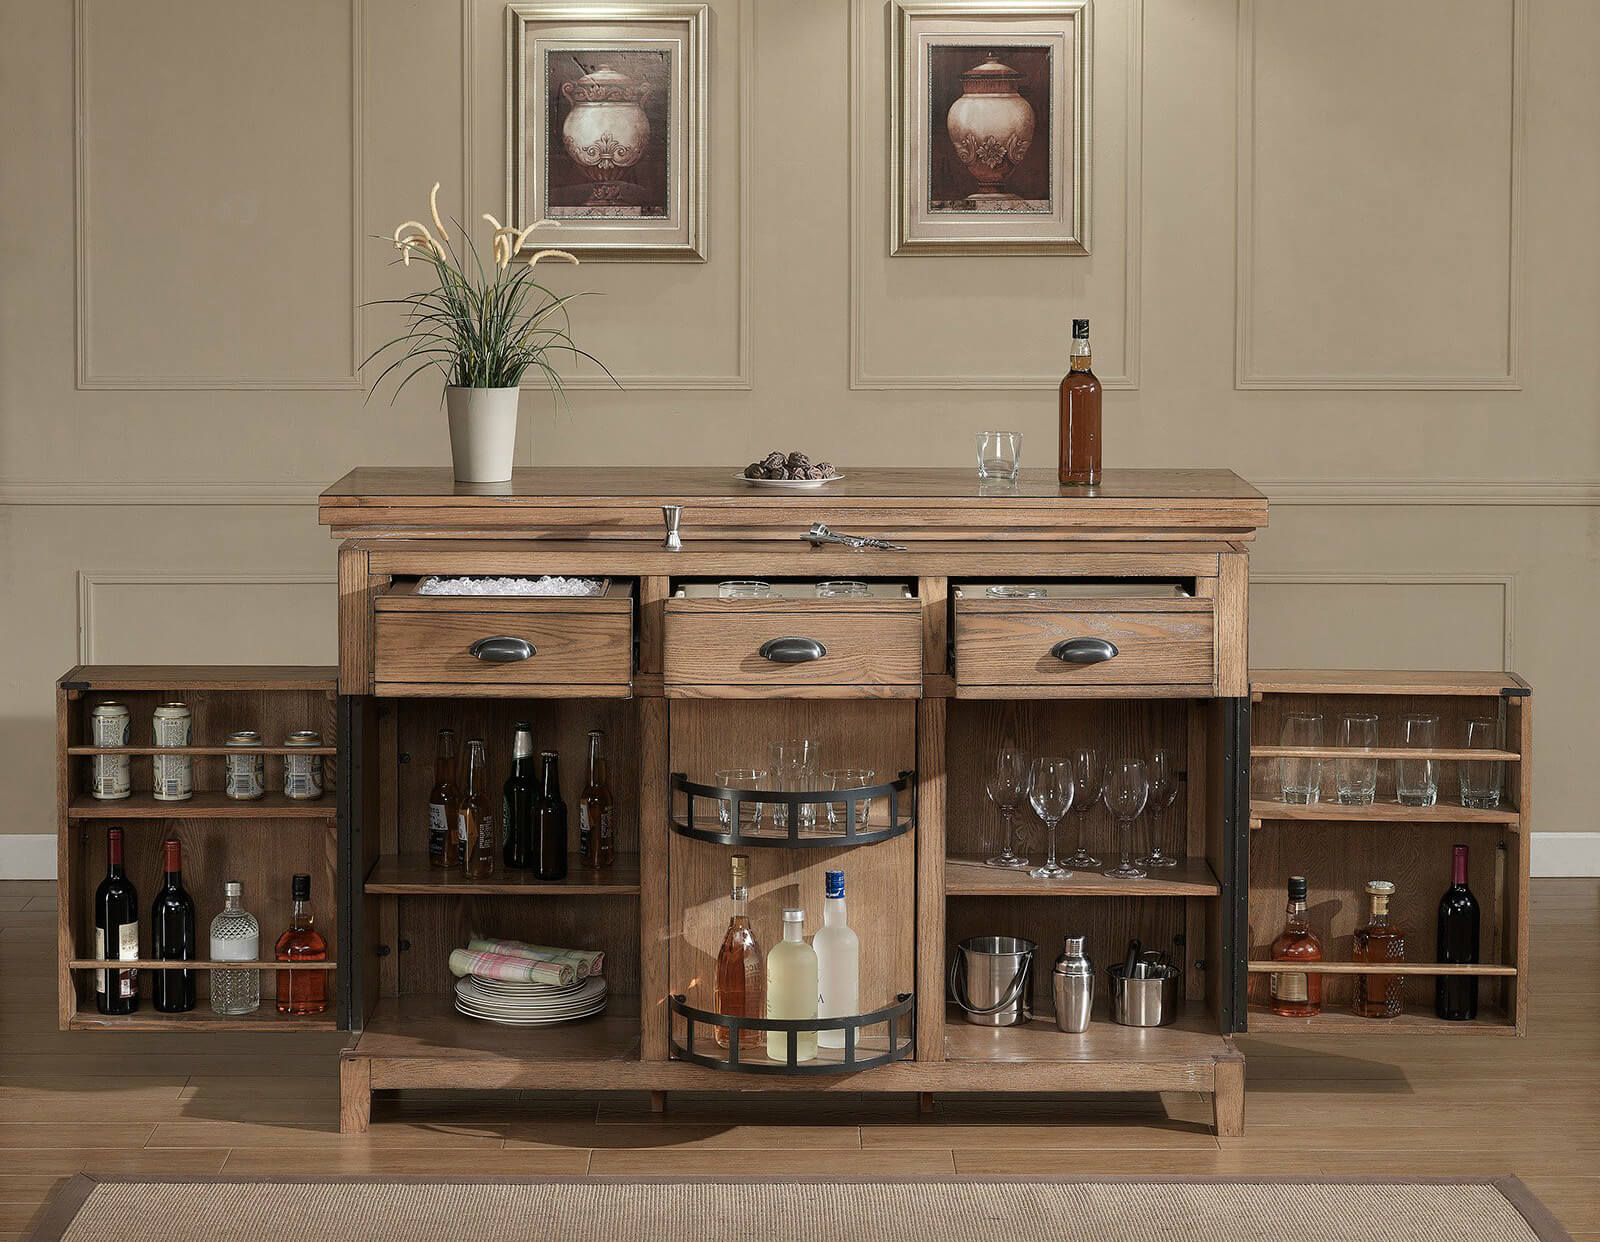 As You Can See, The Amount Of Storage In This Rustic Home Bar Cabinet Unit